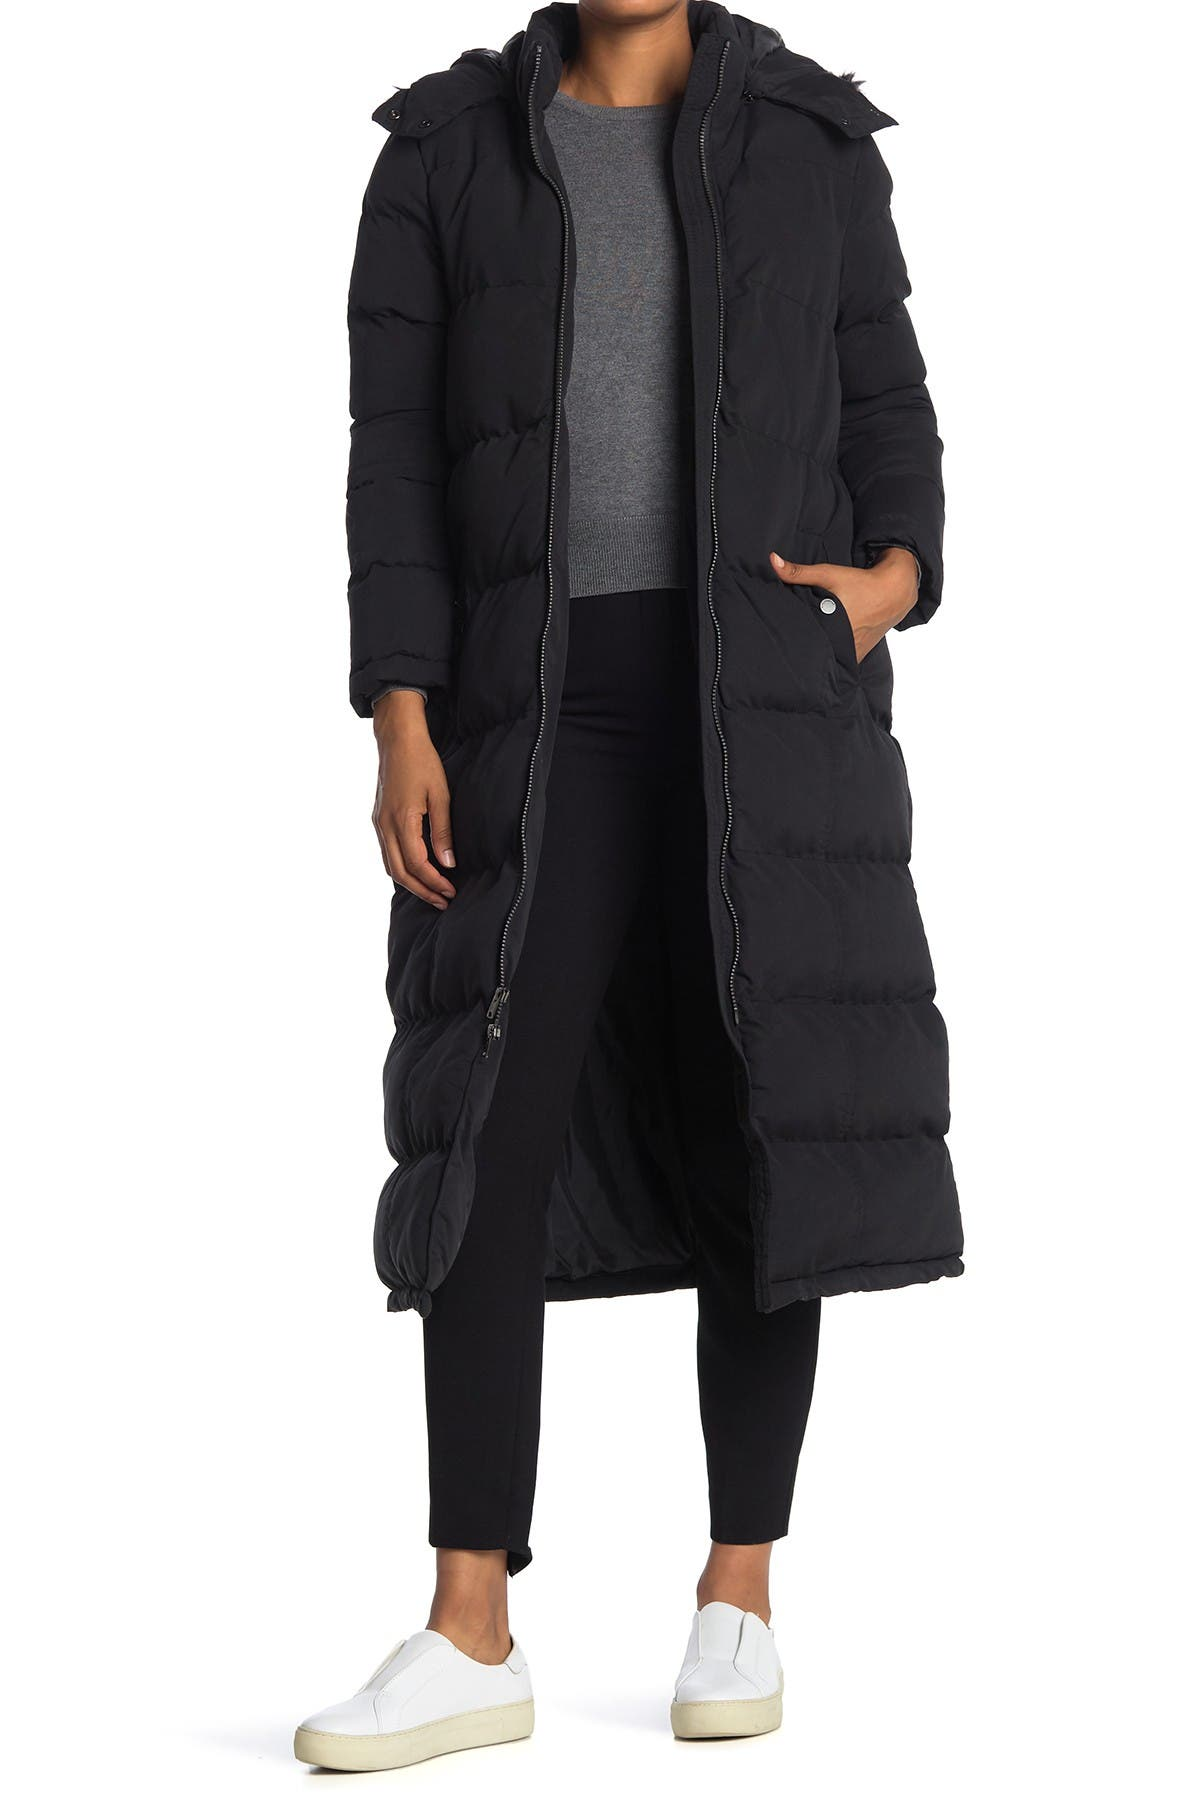 Image of Andrew Marc Tambos Long Puffer Faux Fur Trim Jacket